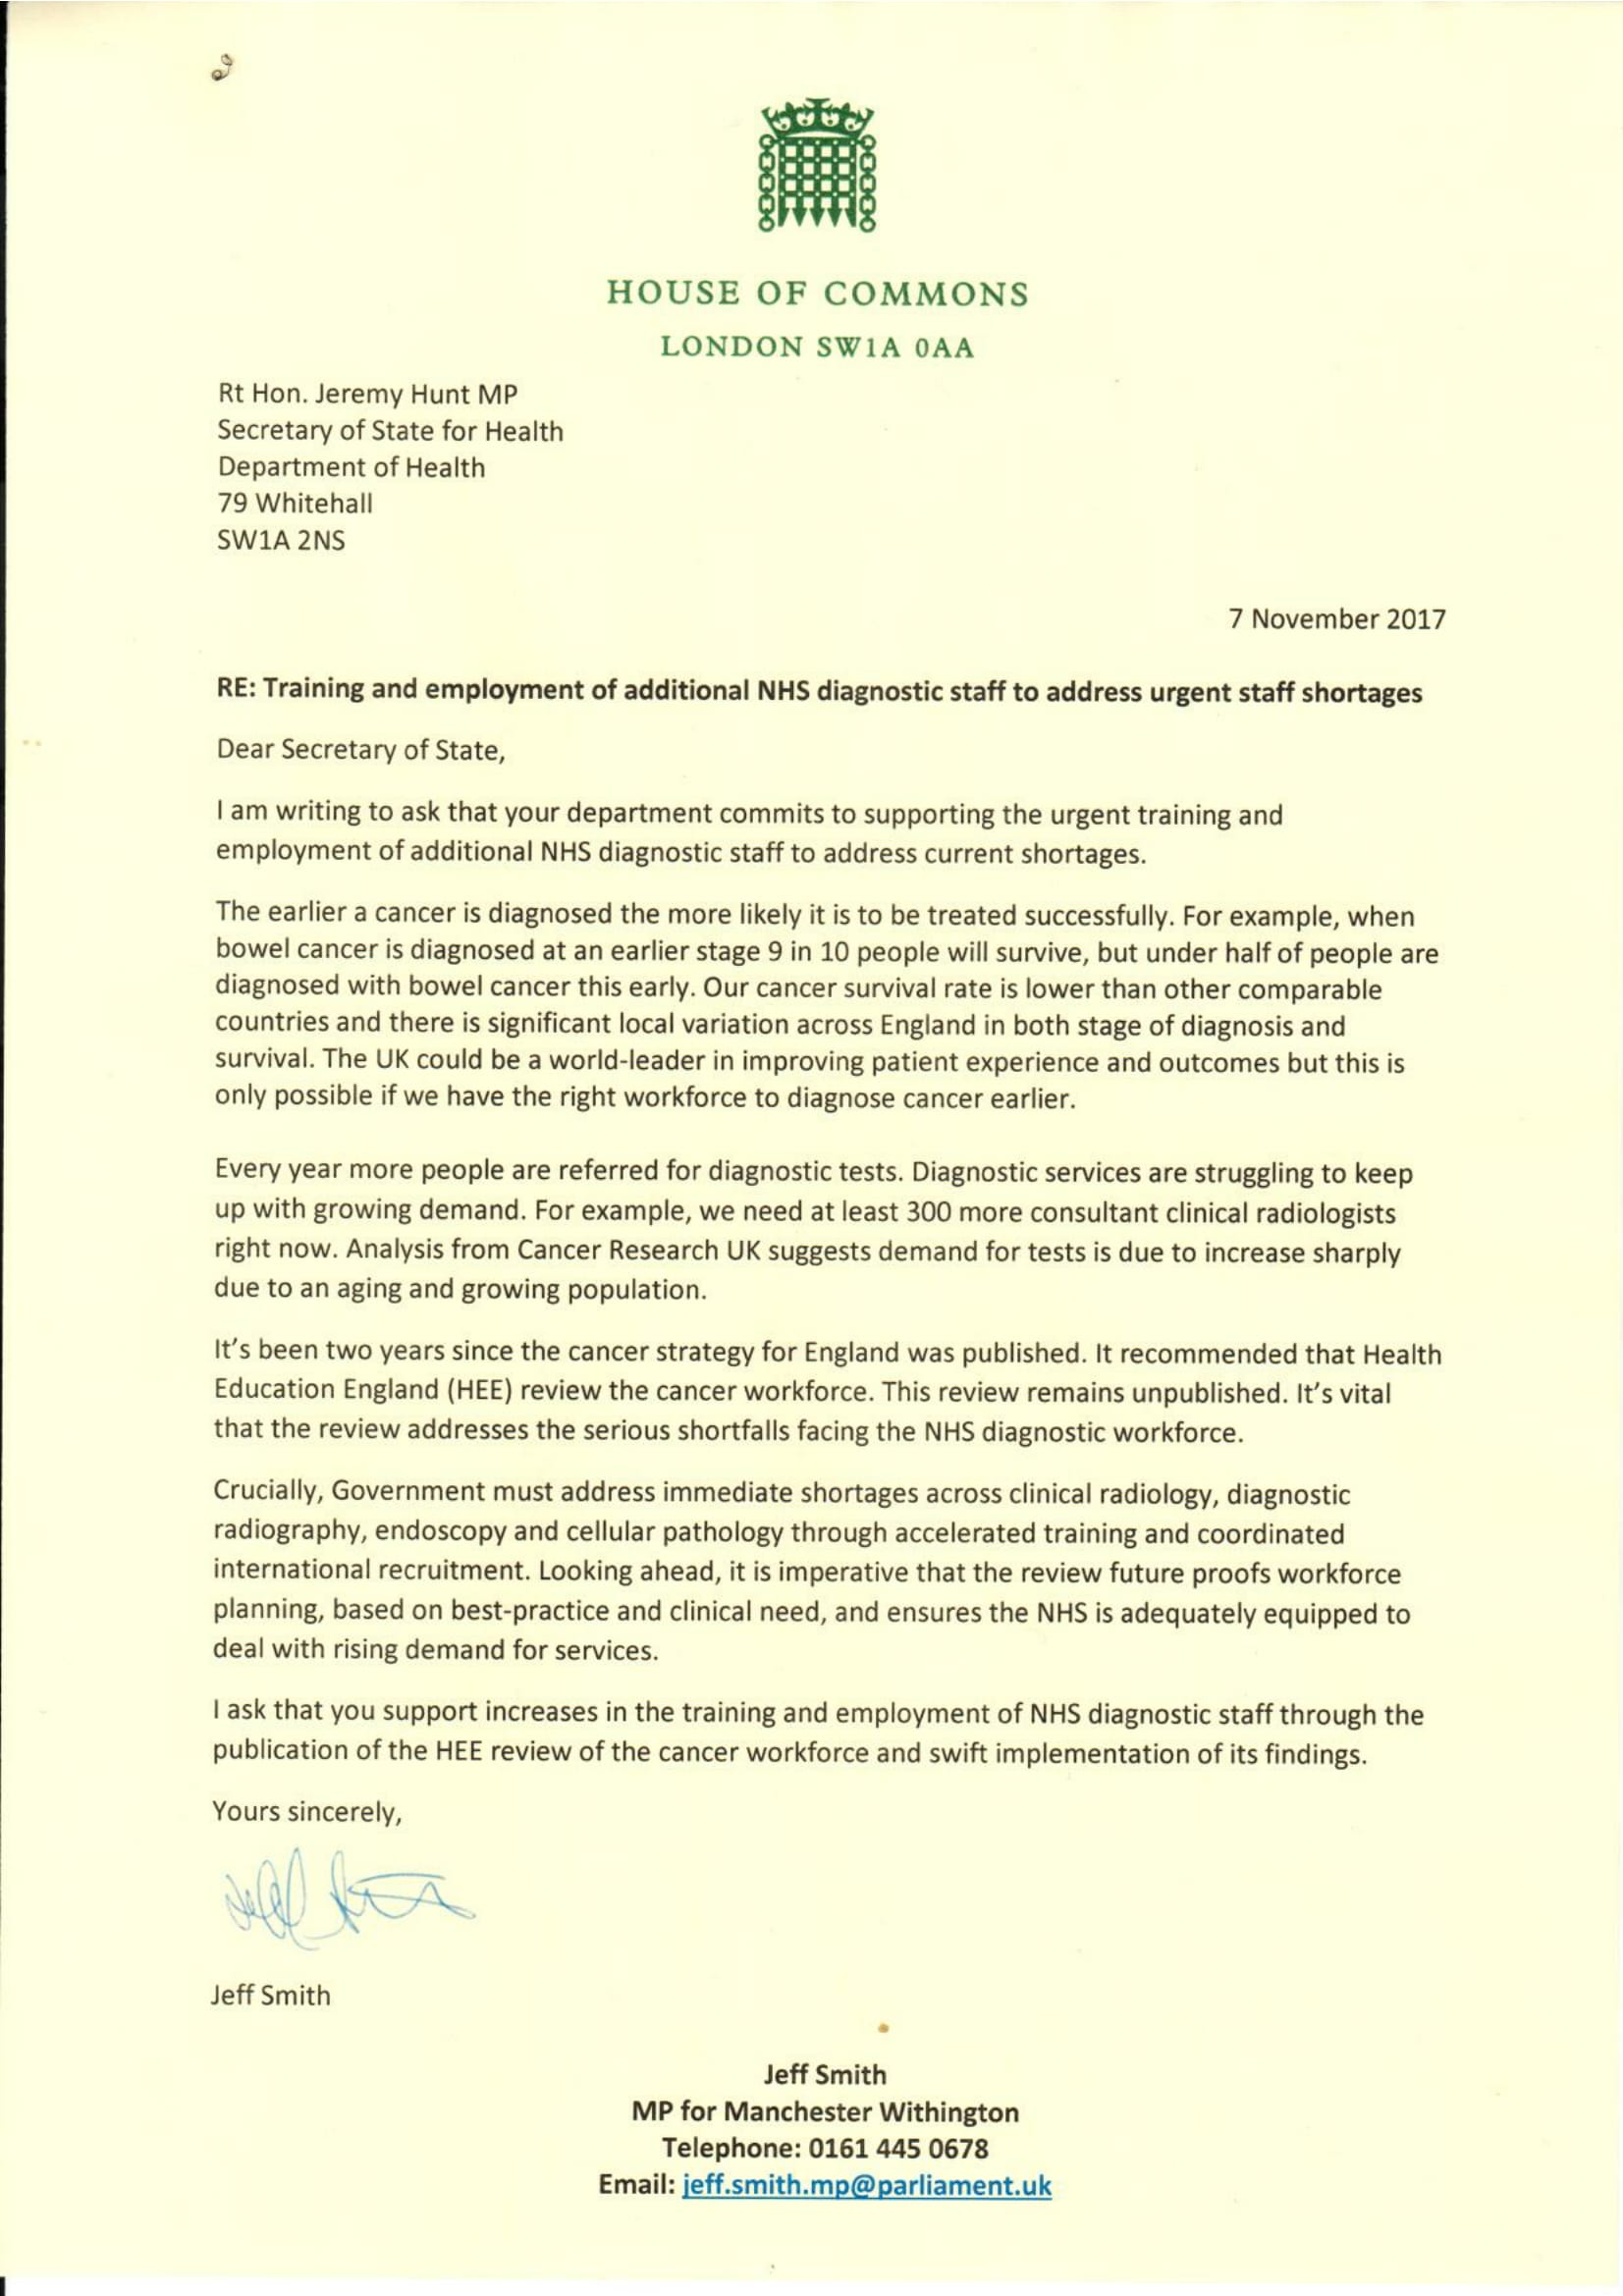 Letter_to_Jeremy_Hunt_scan-1_1_.jpg